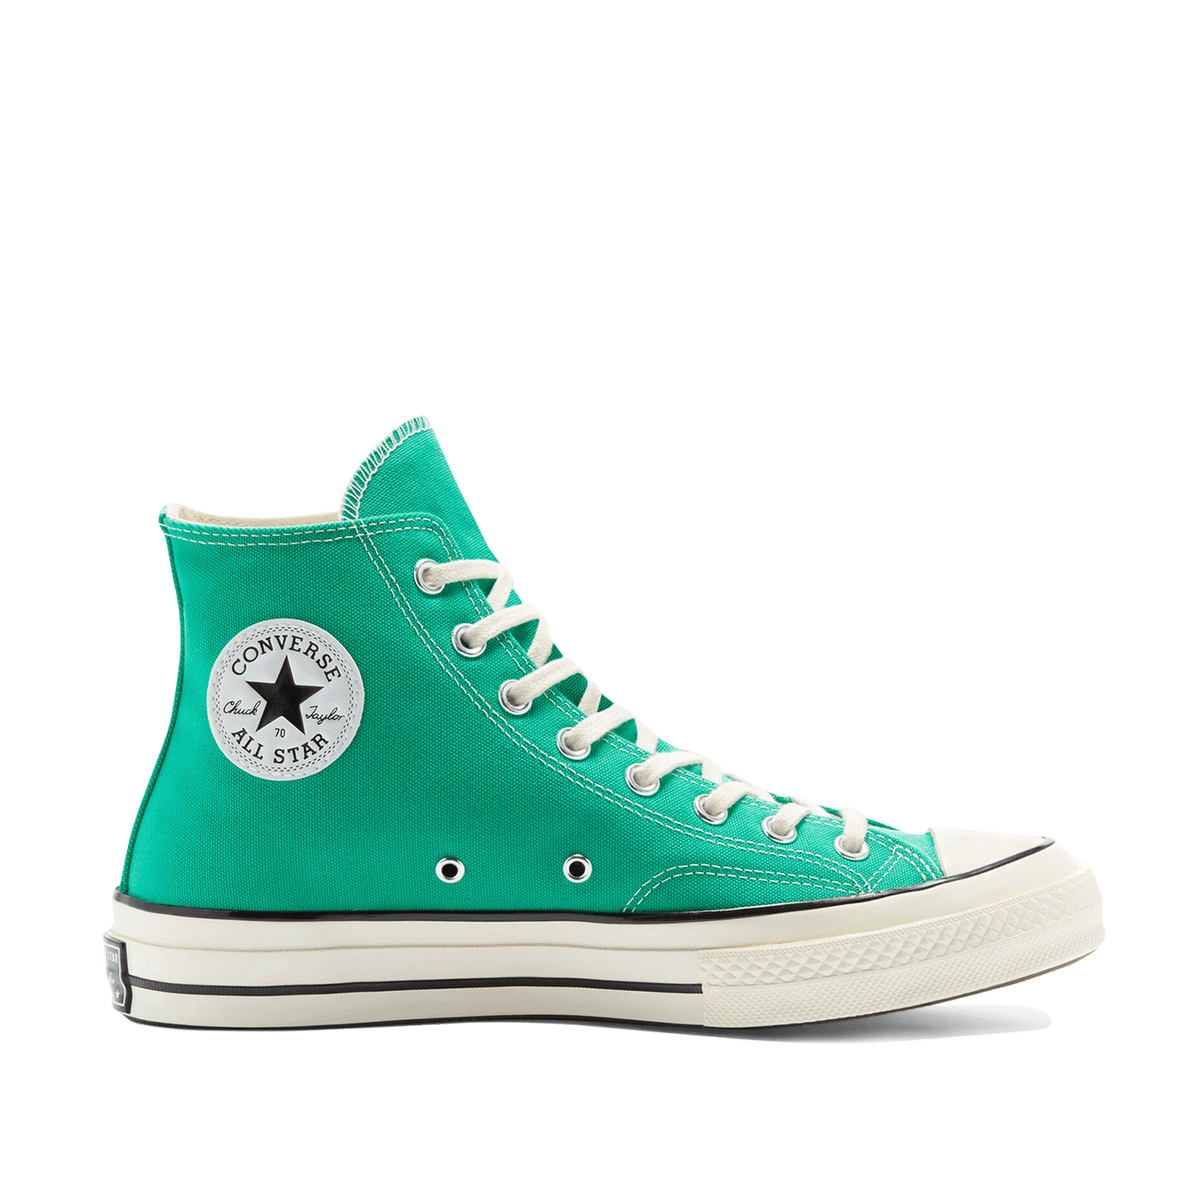 Chuck Taylor All Star 70 Canvas Hi - Court Green